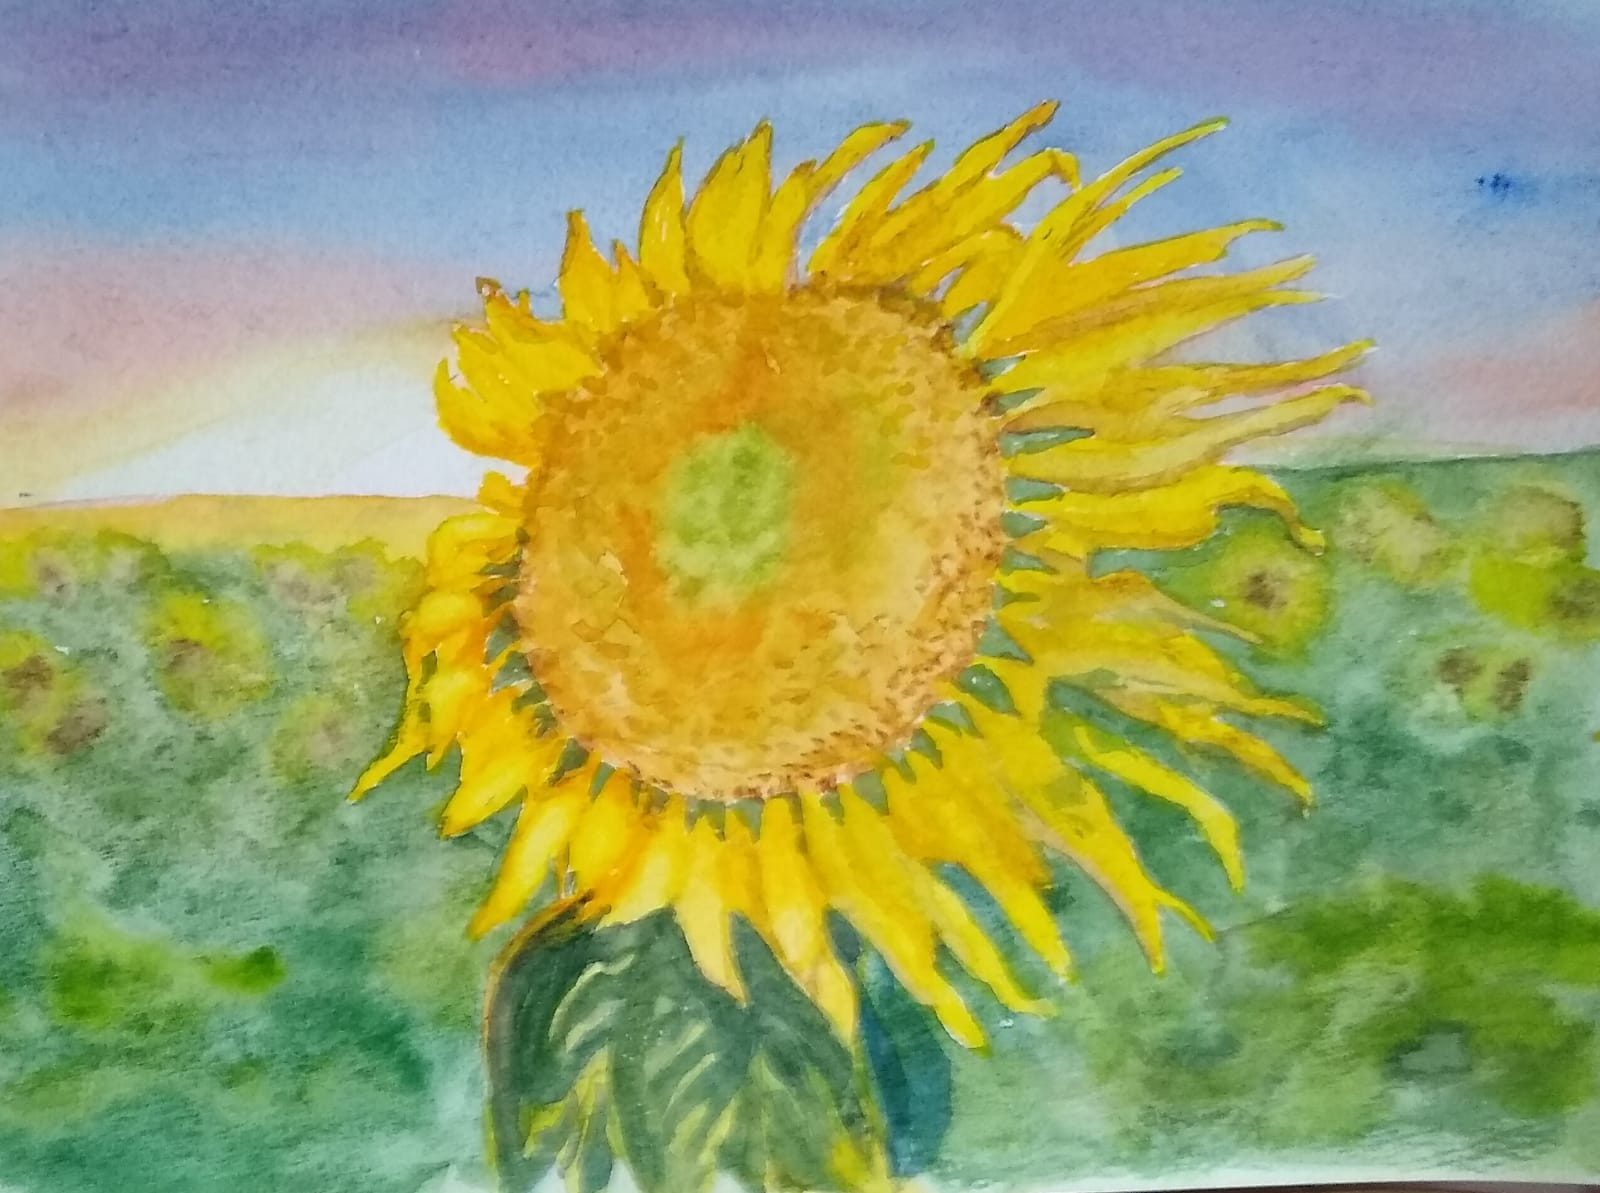 A sunflower by Fran